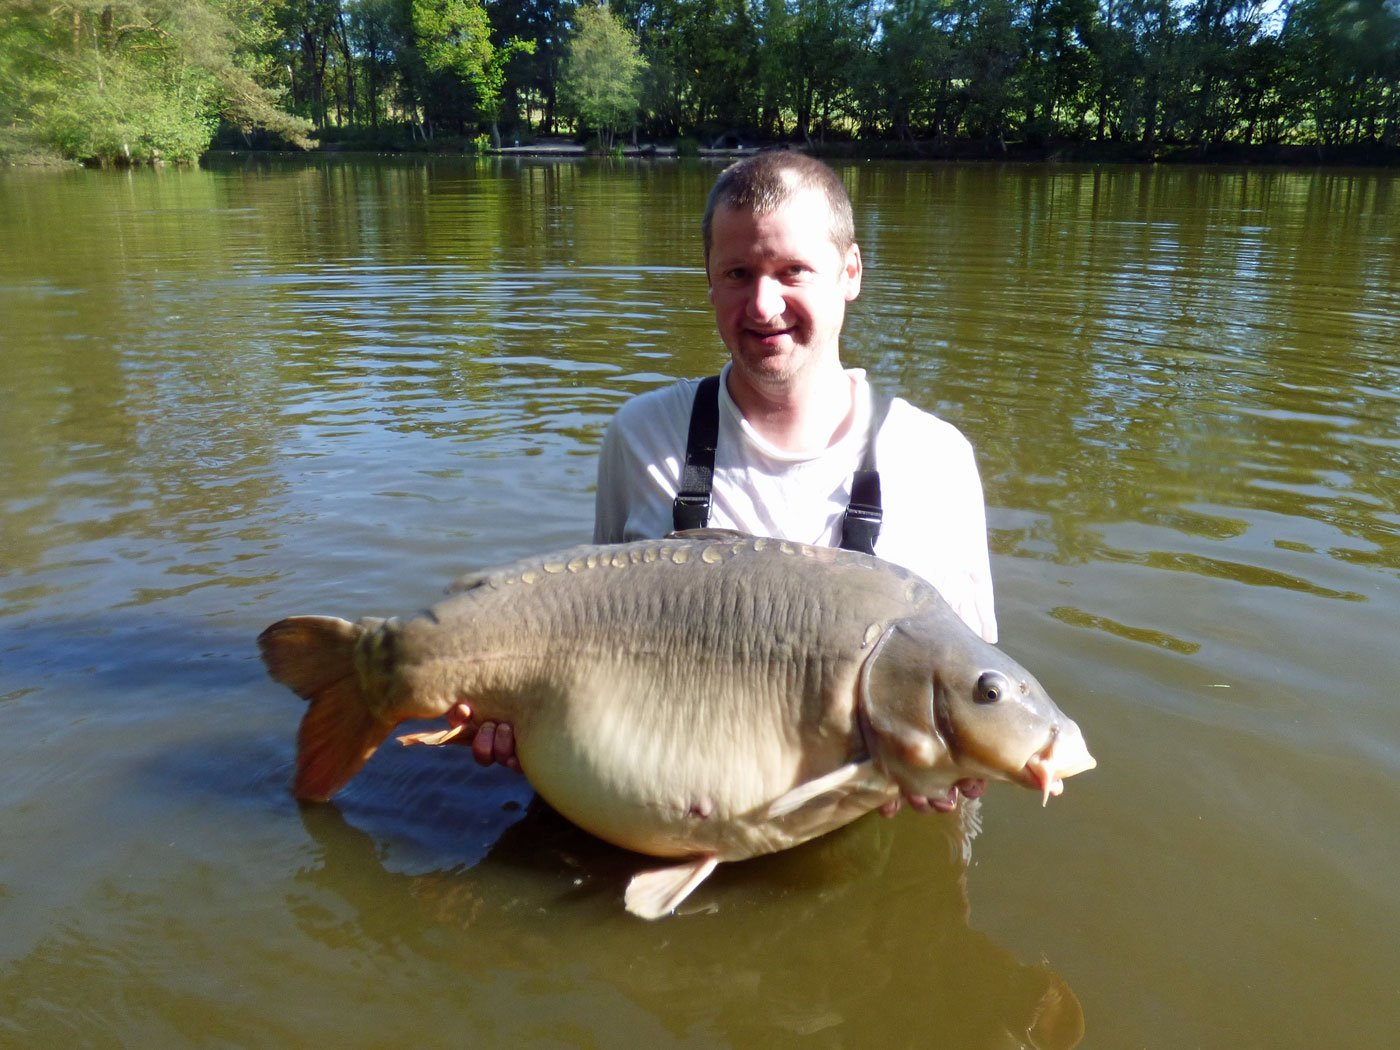 Ian with Cut Tail at 39lbs 12oz mirror carp